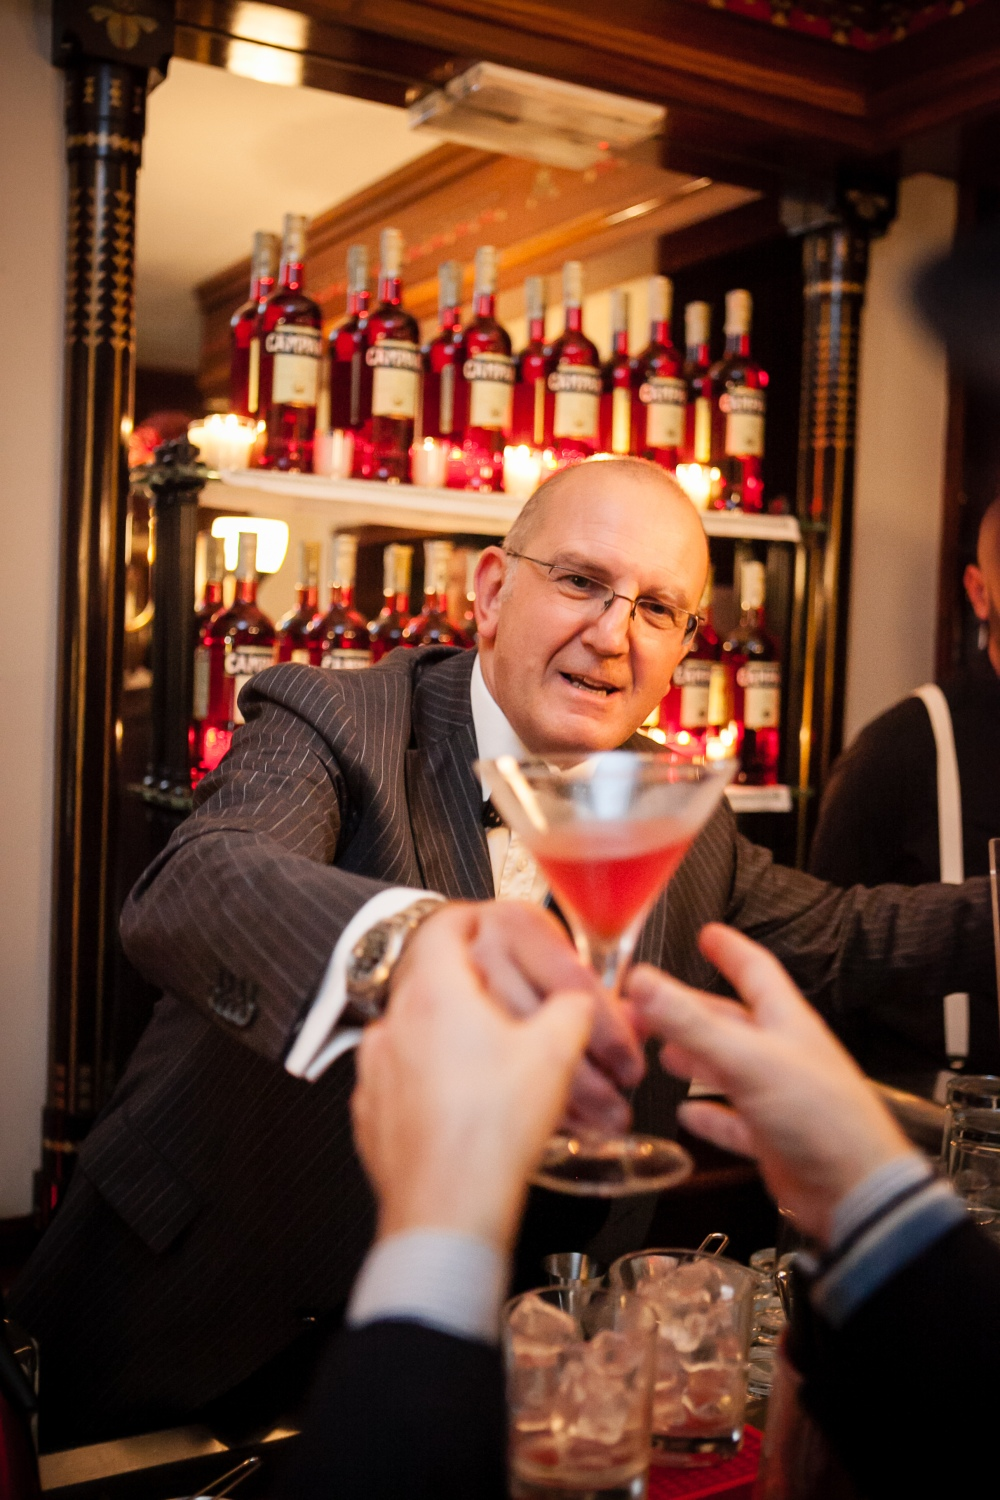 Lucca Picchi serving a Negroni to two eagerly grabbing hands